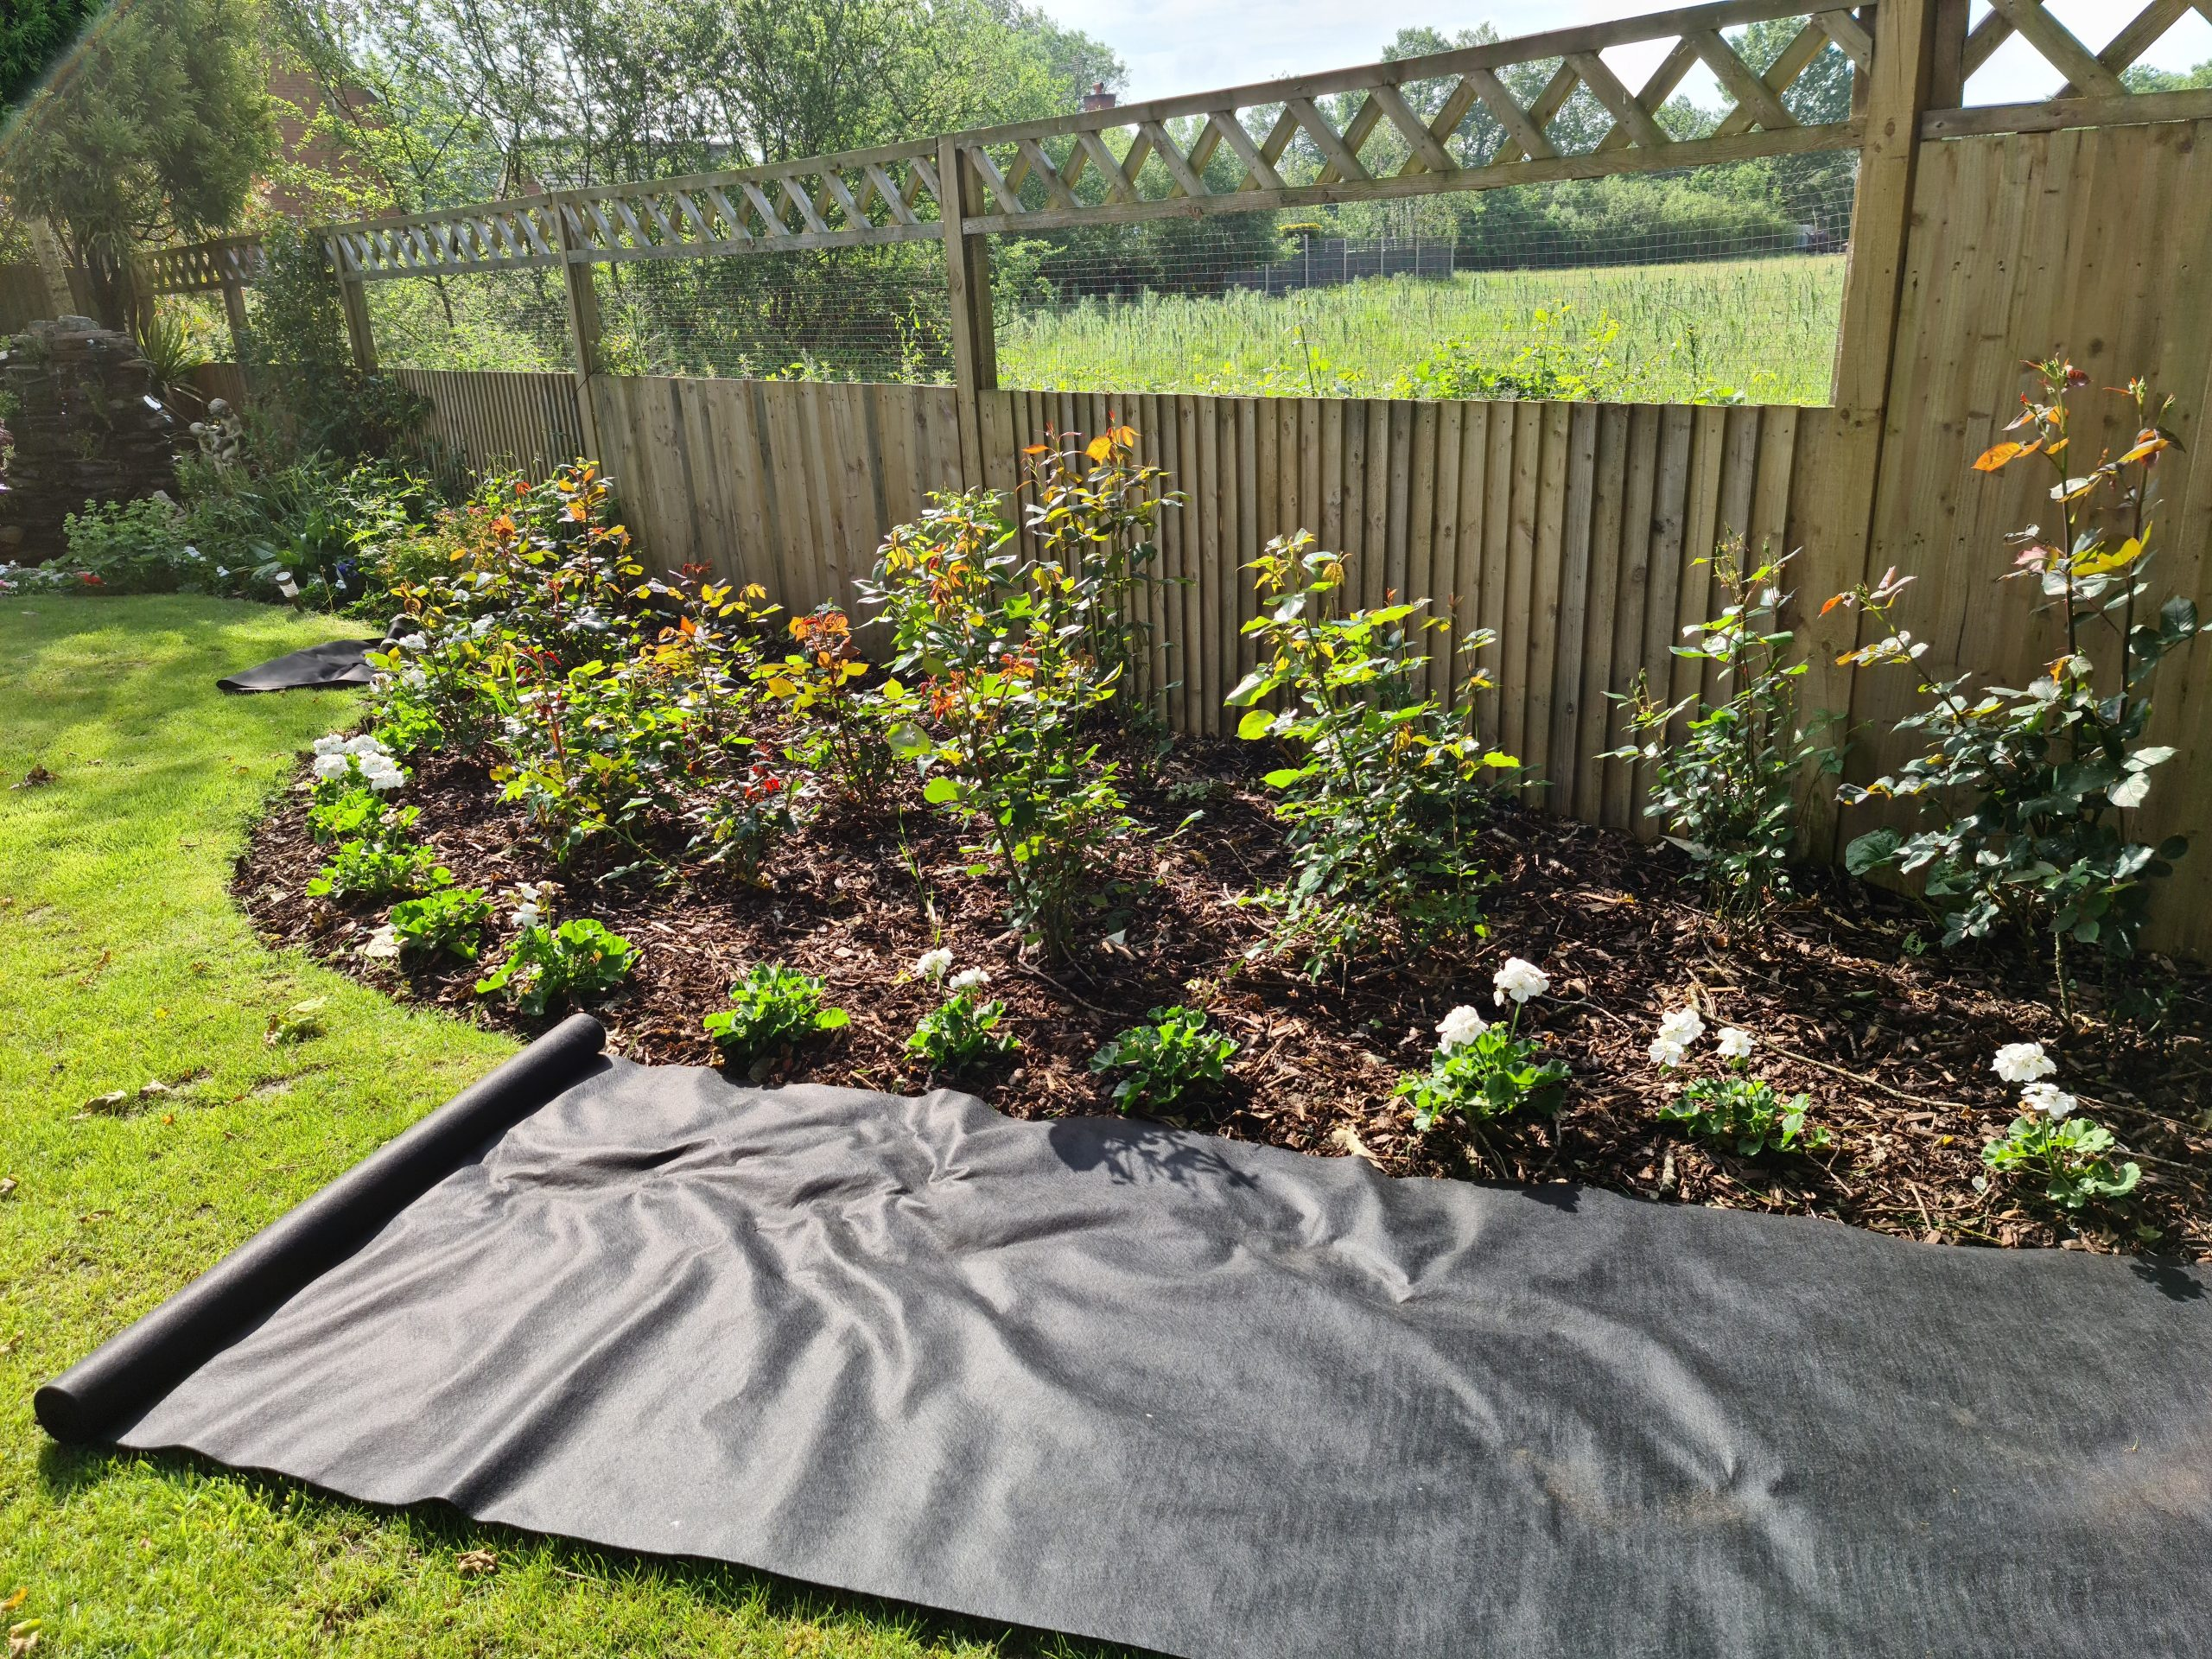 Flortex fabric for weeds